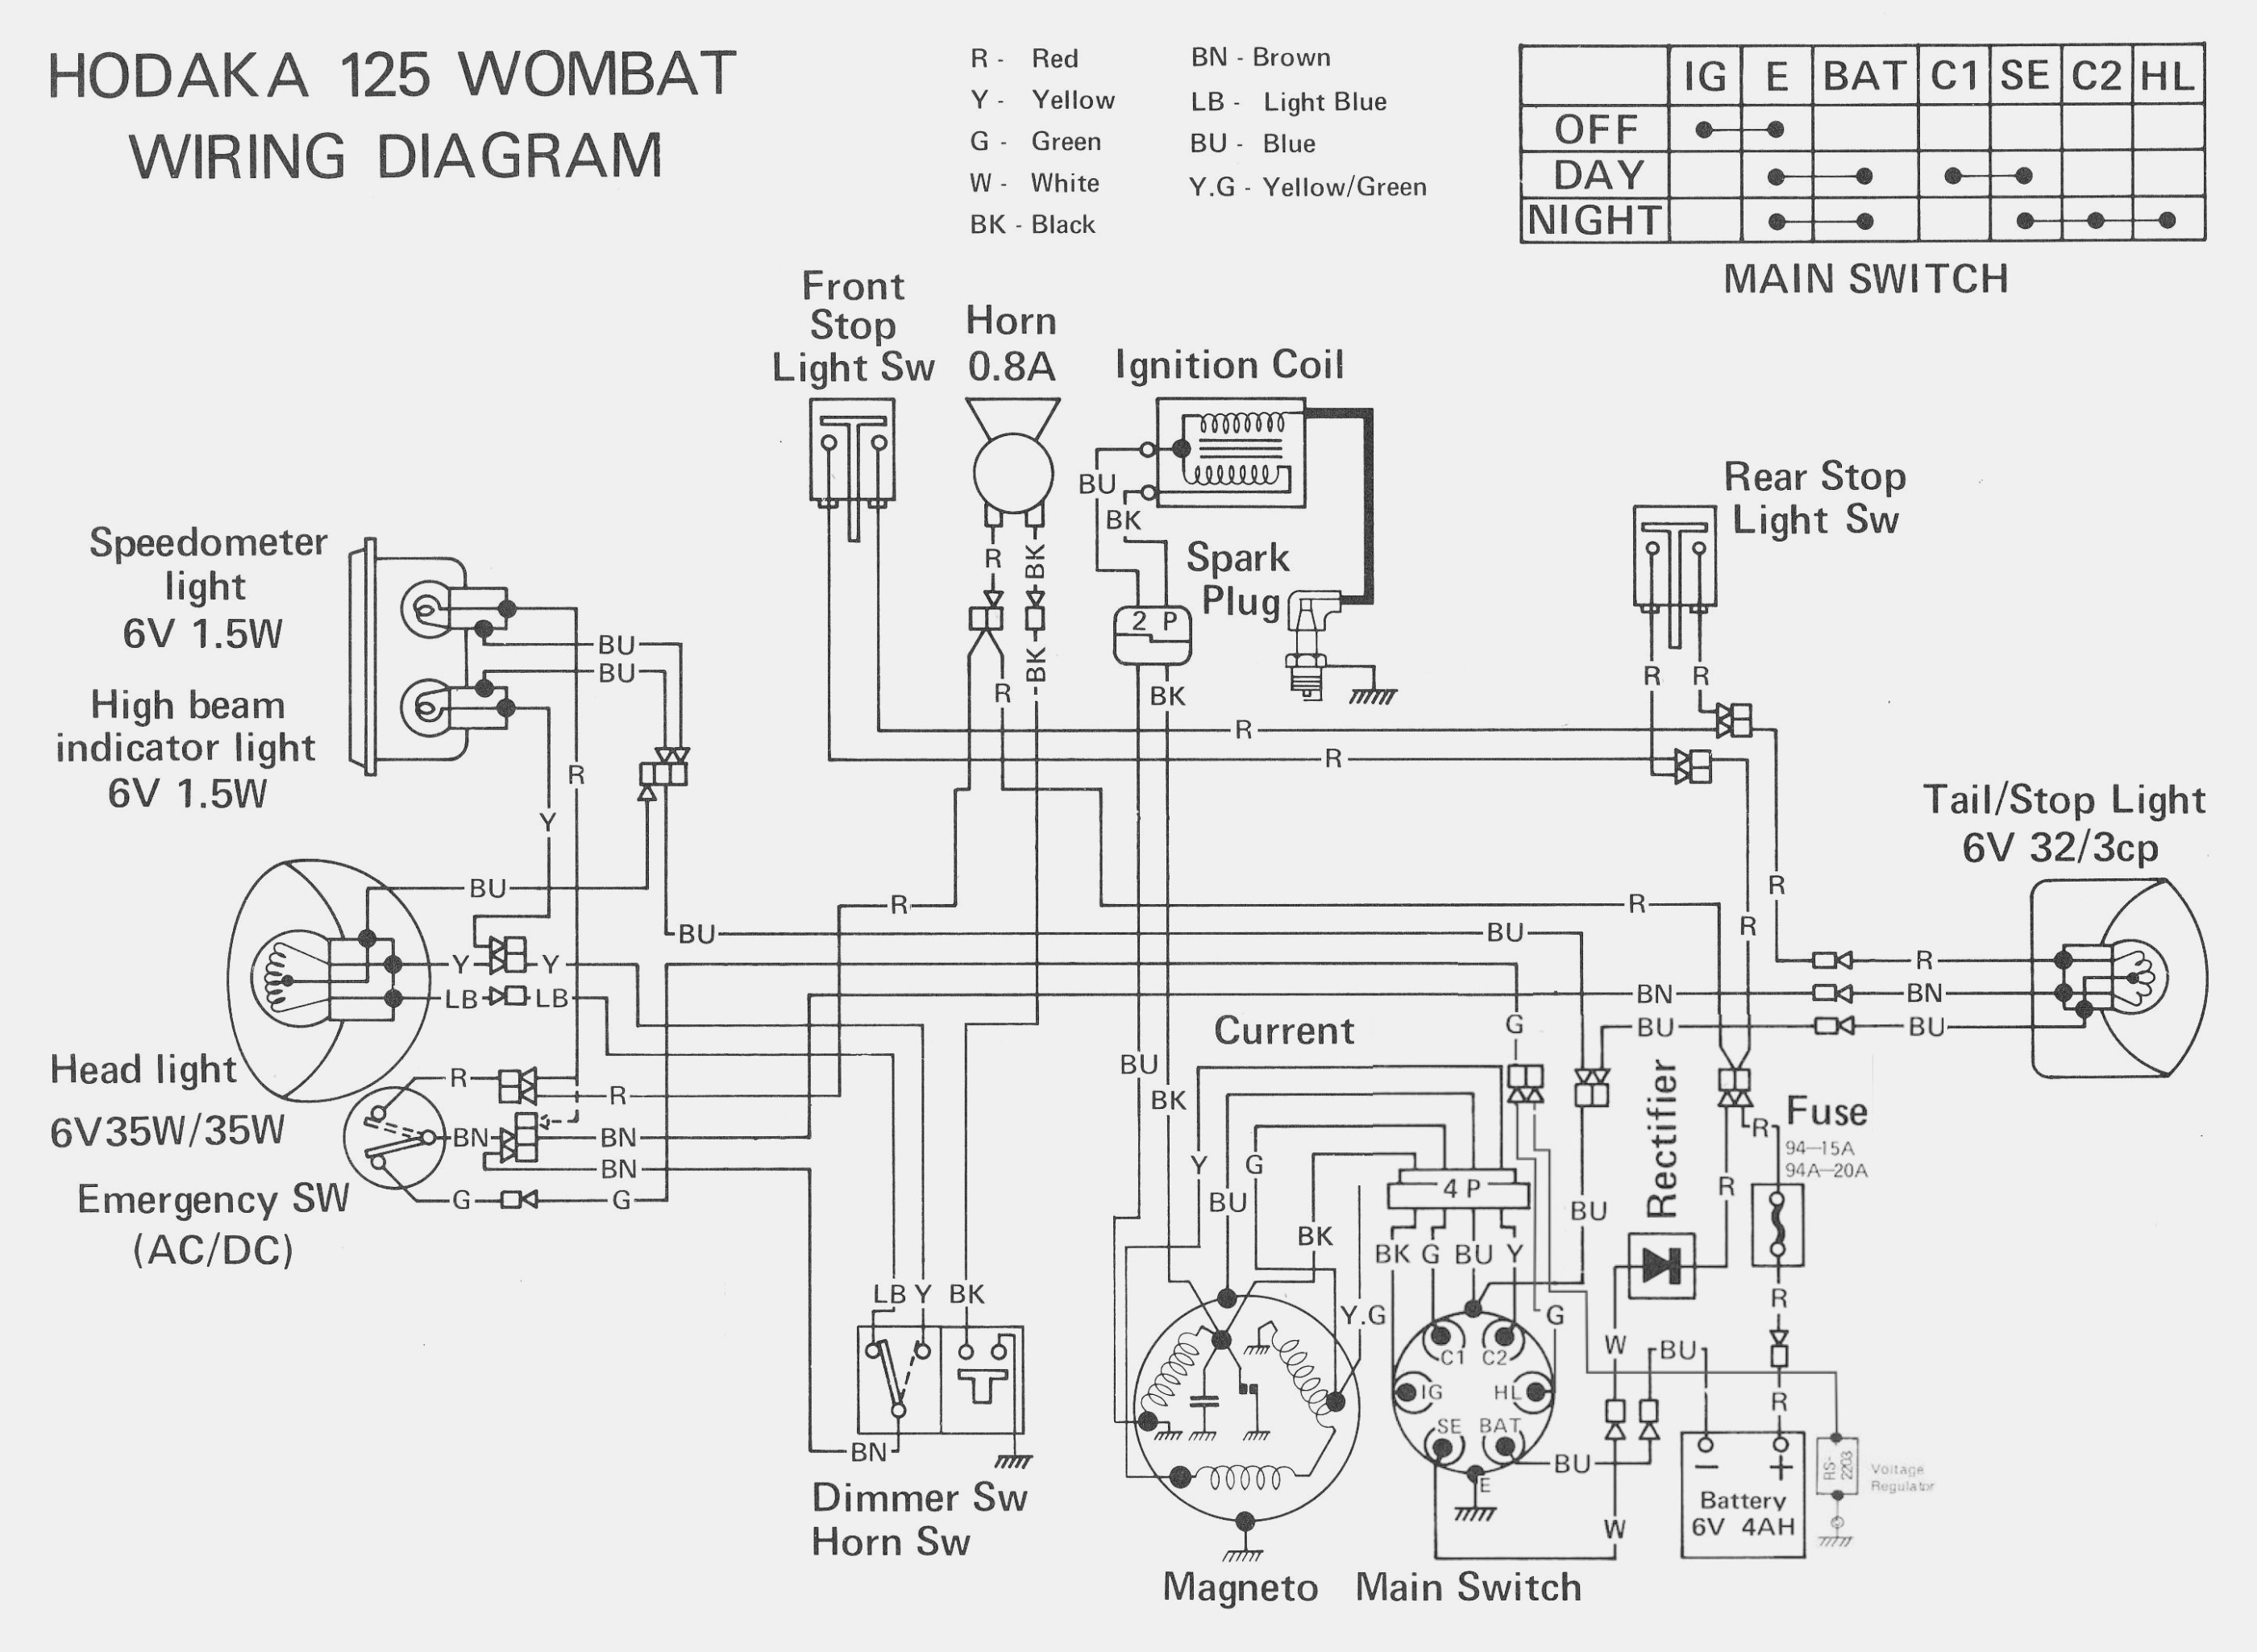 KT_2611] Ds 90 Wiring Diagram Download DiagramClesi Siry Lotap Trofu Sapebe Mohammedshrine Librar Wiring 101